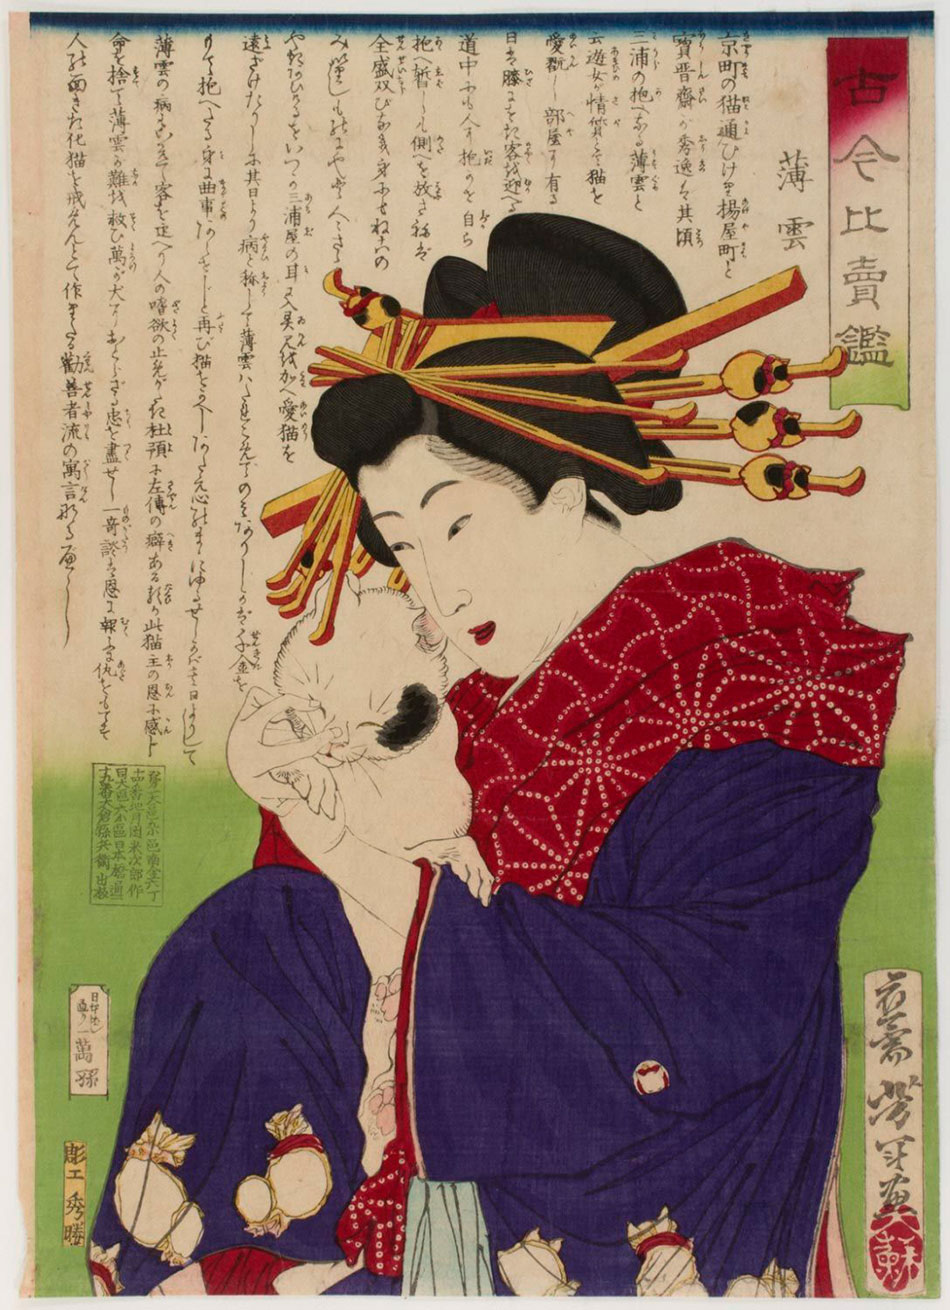 The-Courtesan-Usugumo-Holding--by-Tsukioka-Yoshitoshi---Philadelphia-Museum-of-Art_950-W